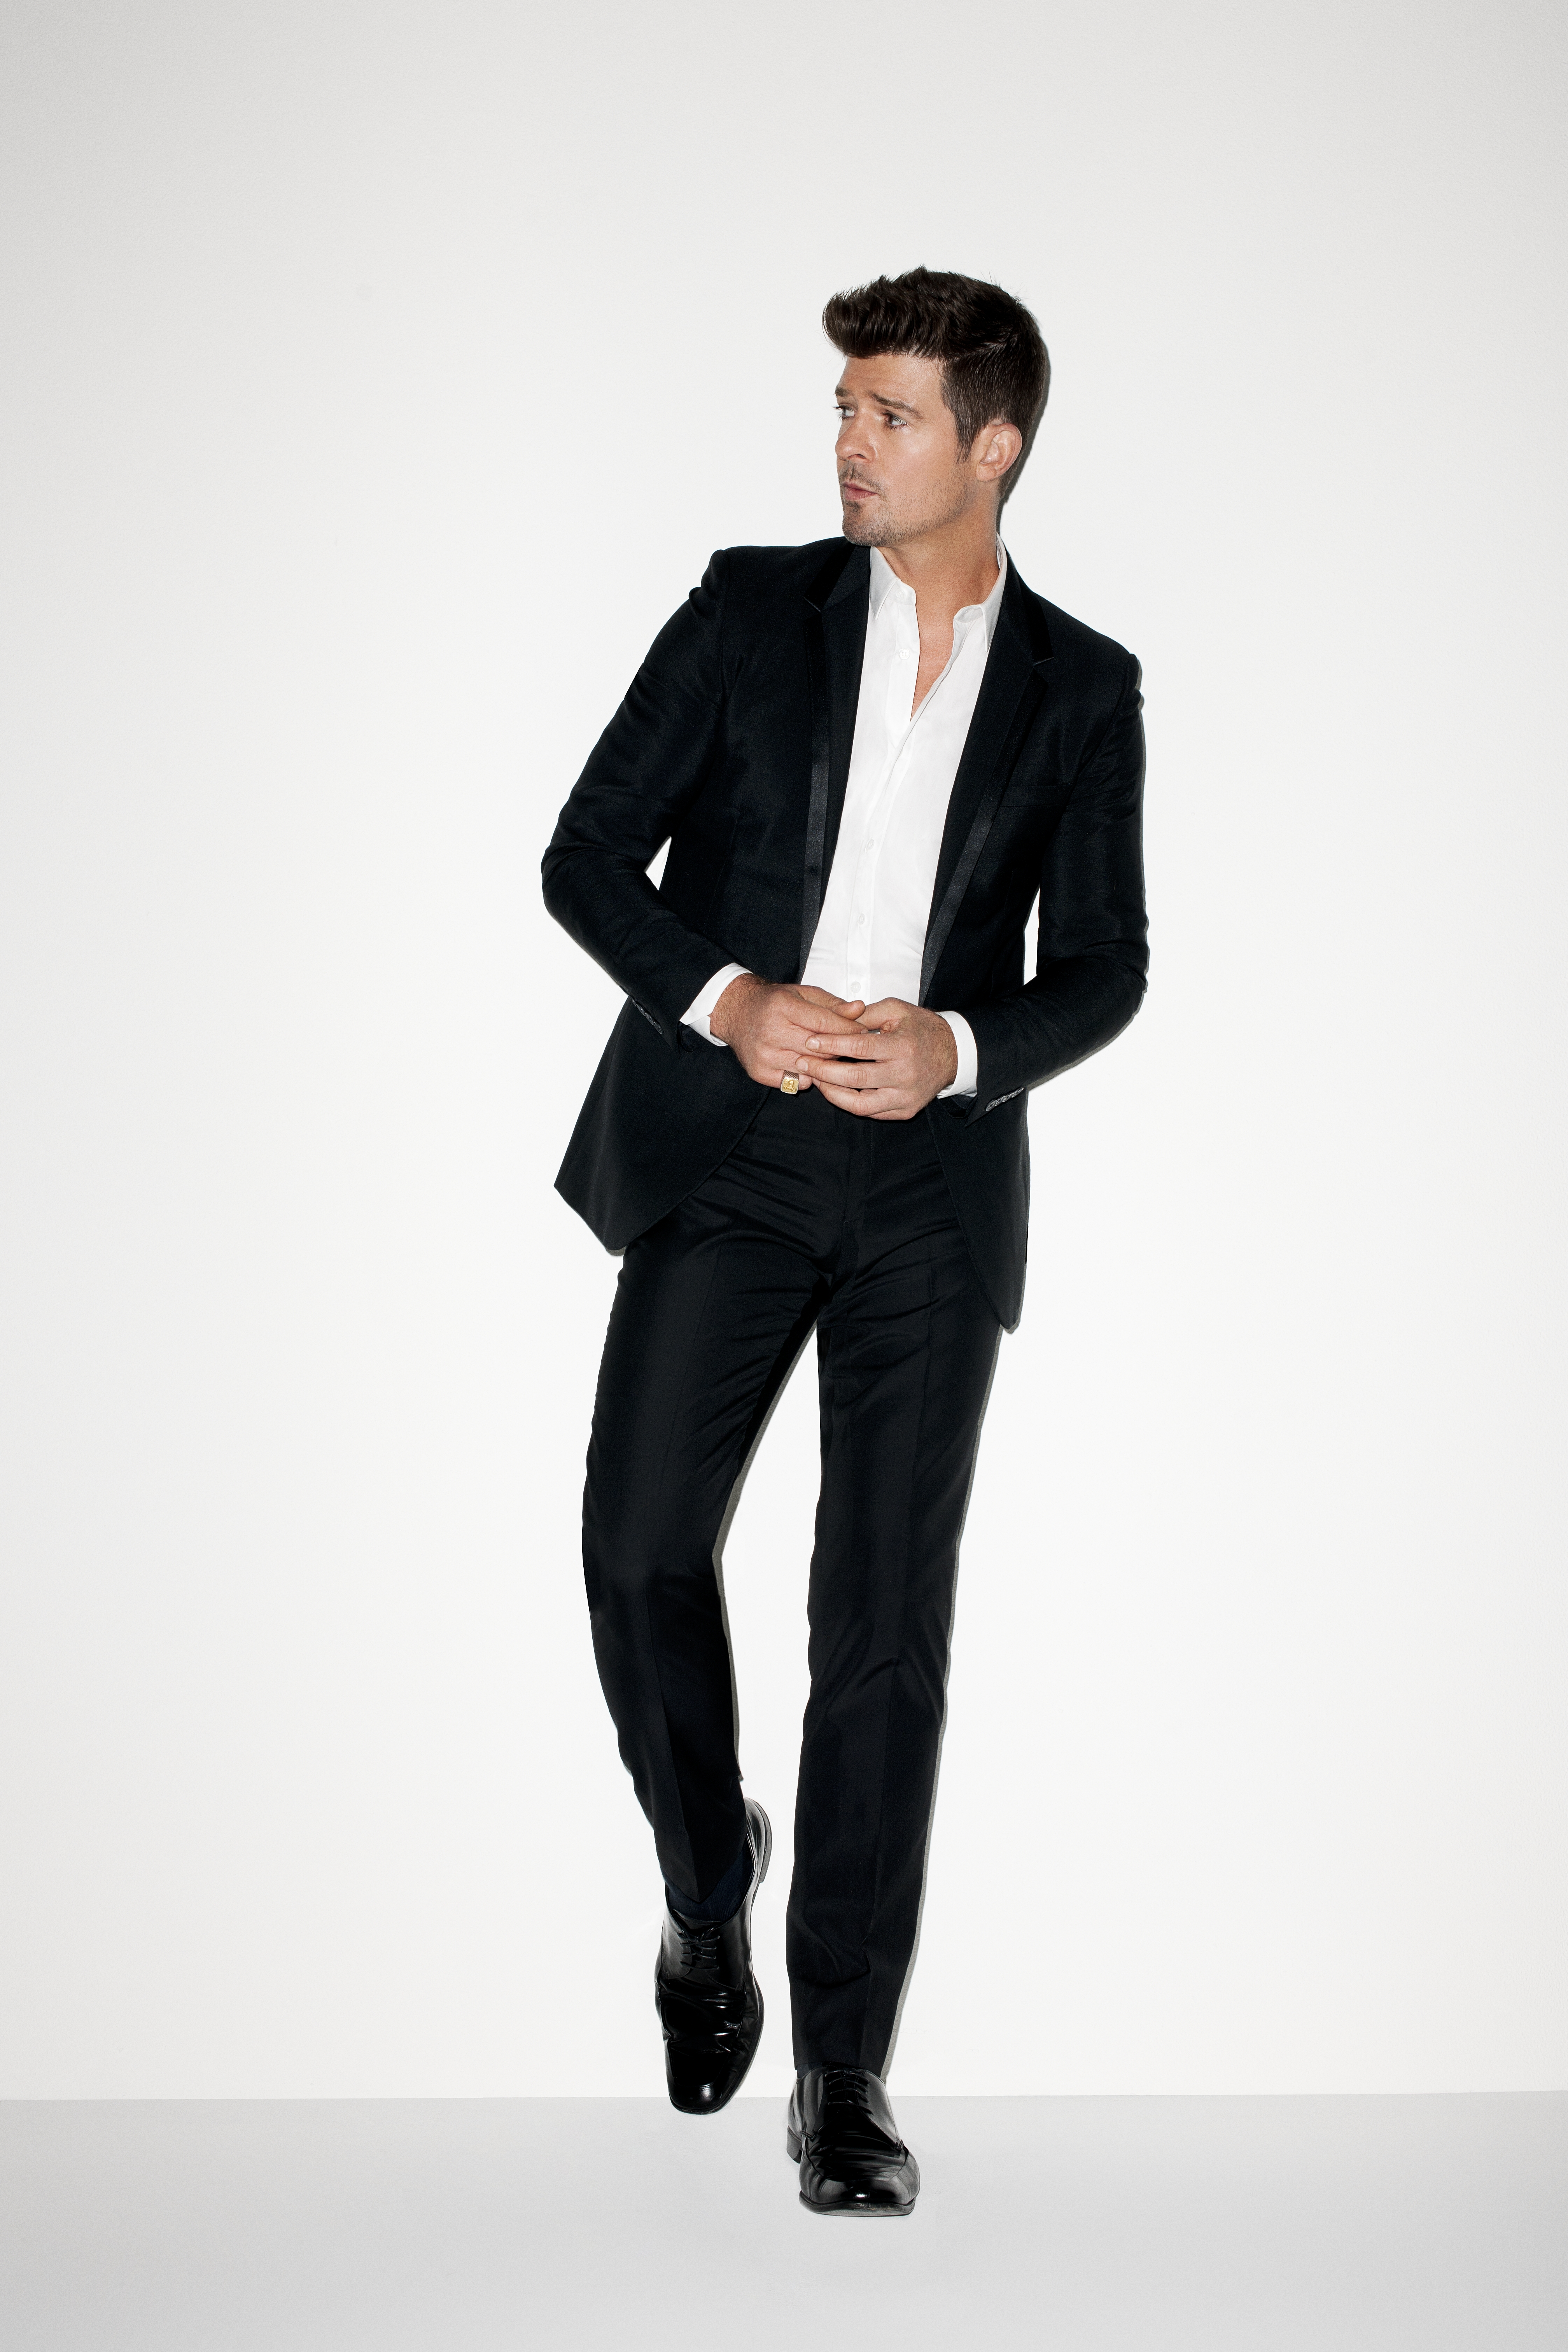 Robin thicke press here talent photos nvjuhfo Image collections